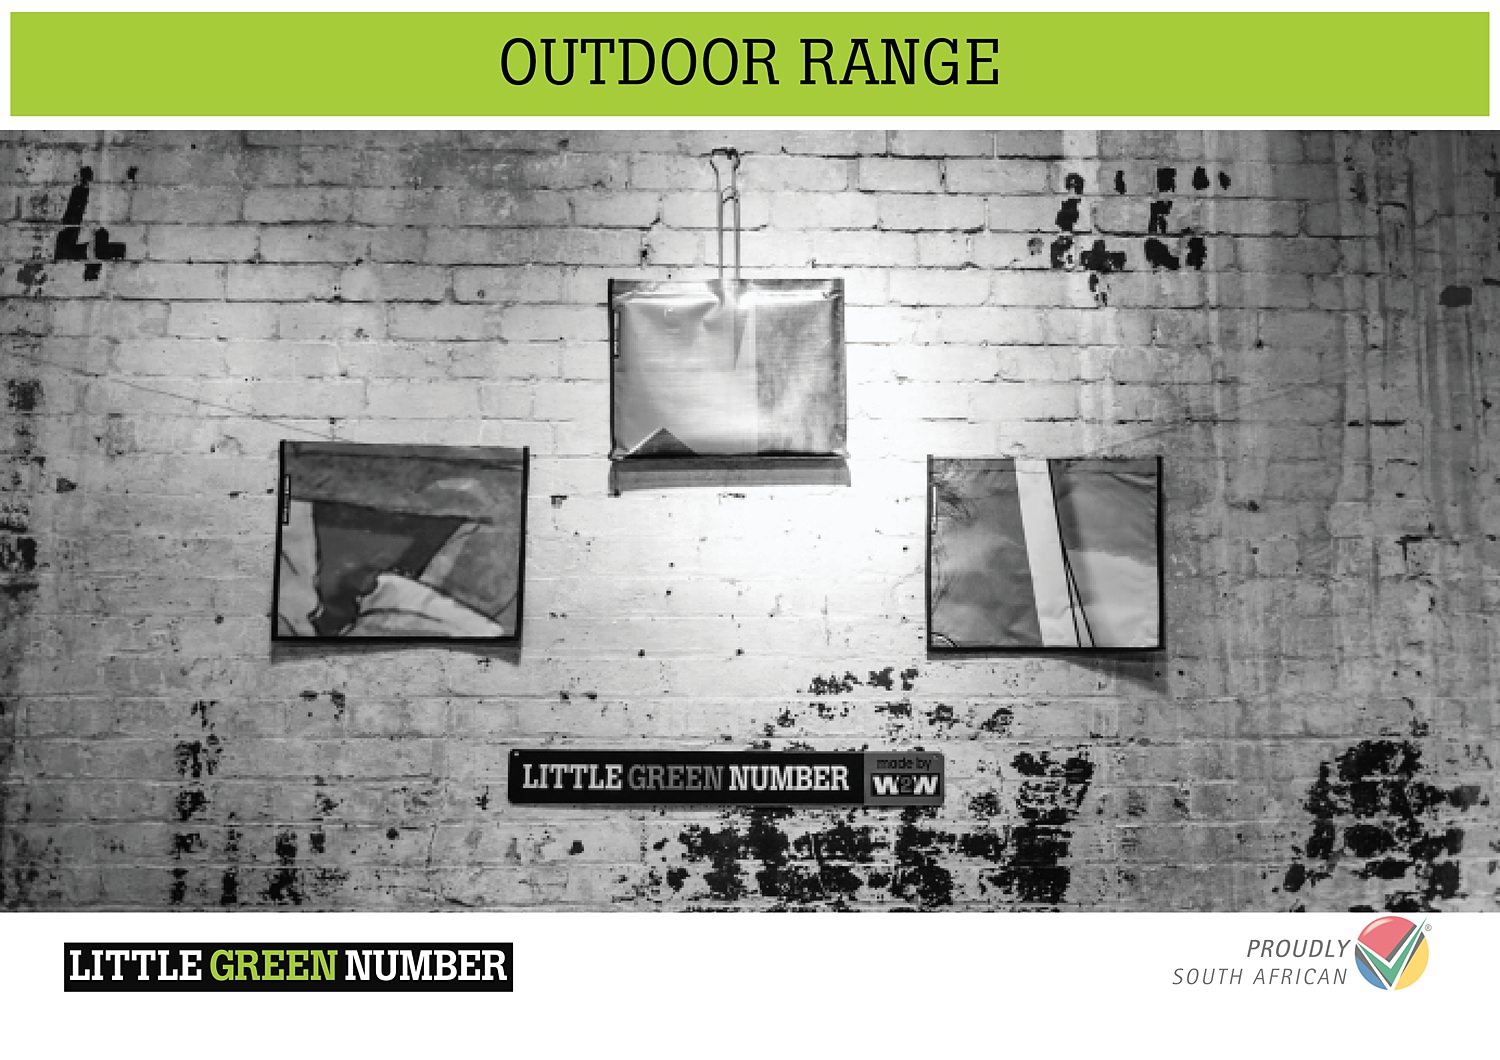 Little Green Number Catalogue Buy1give1 upcycling billboards gauteng25.jpg